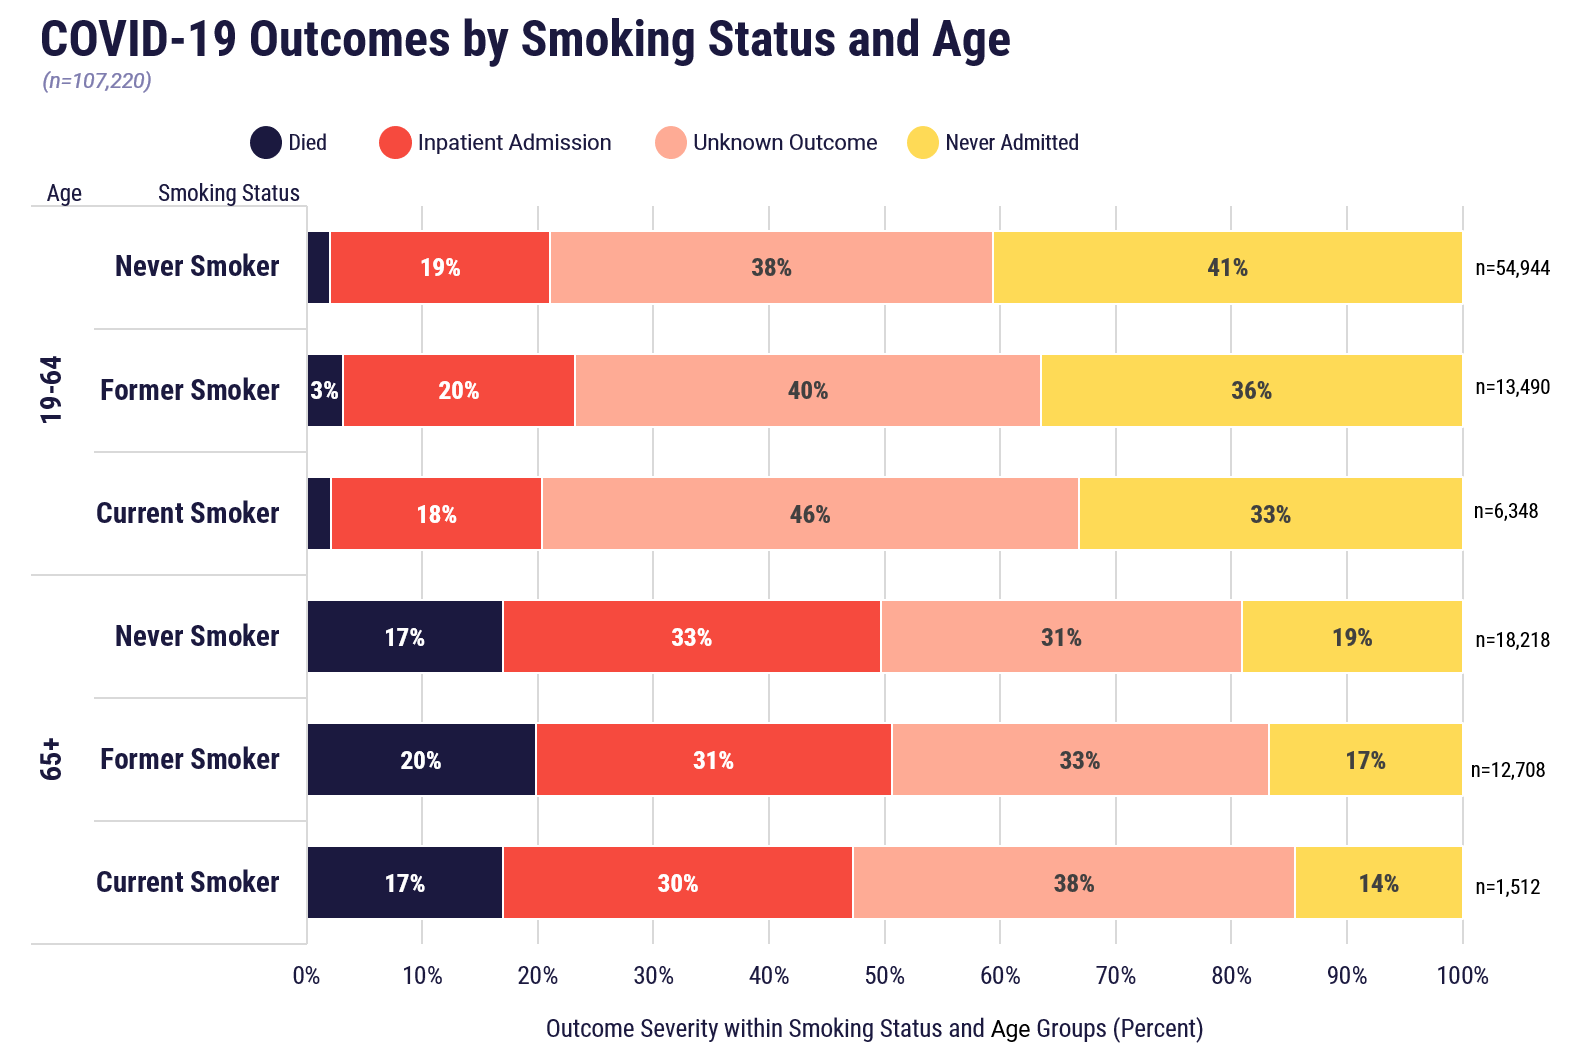 COVID-19 outcomes by smoking status and age